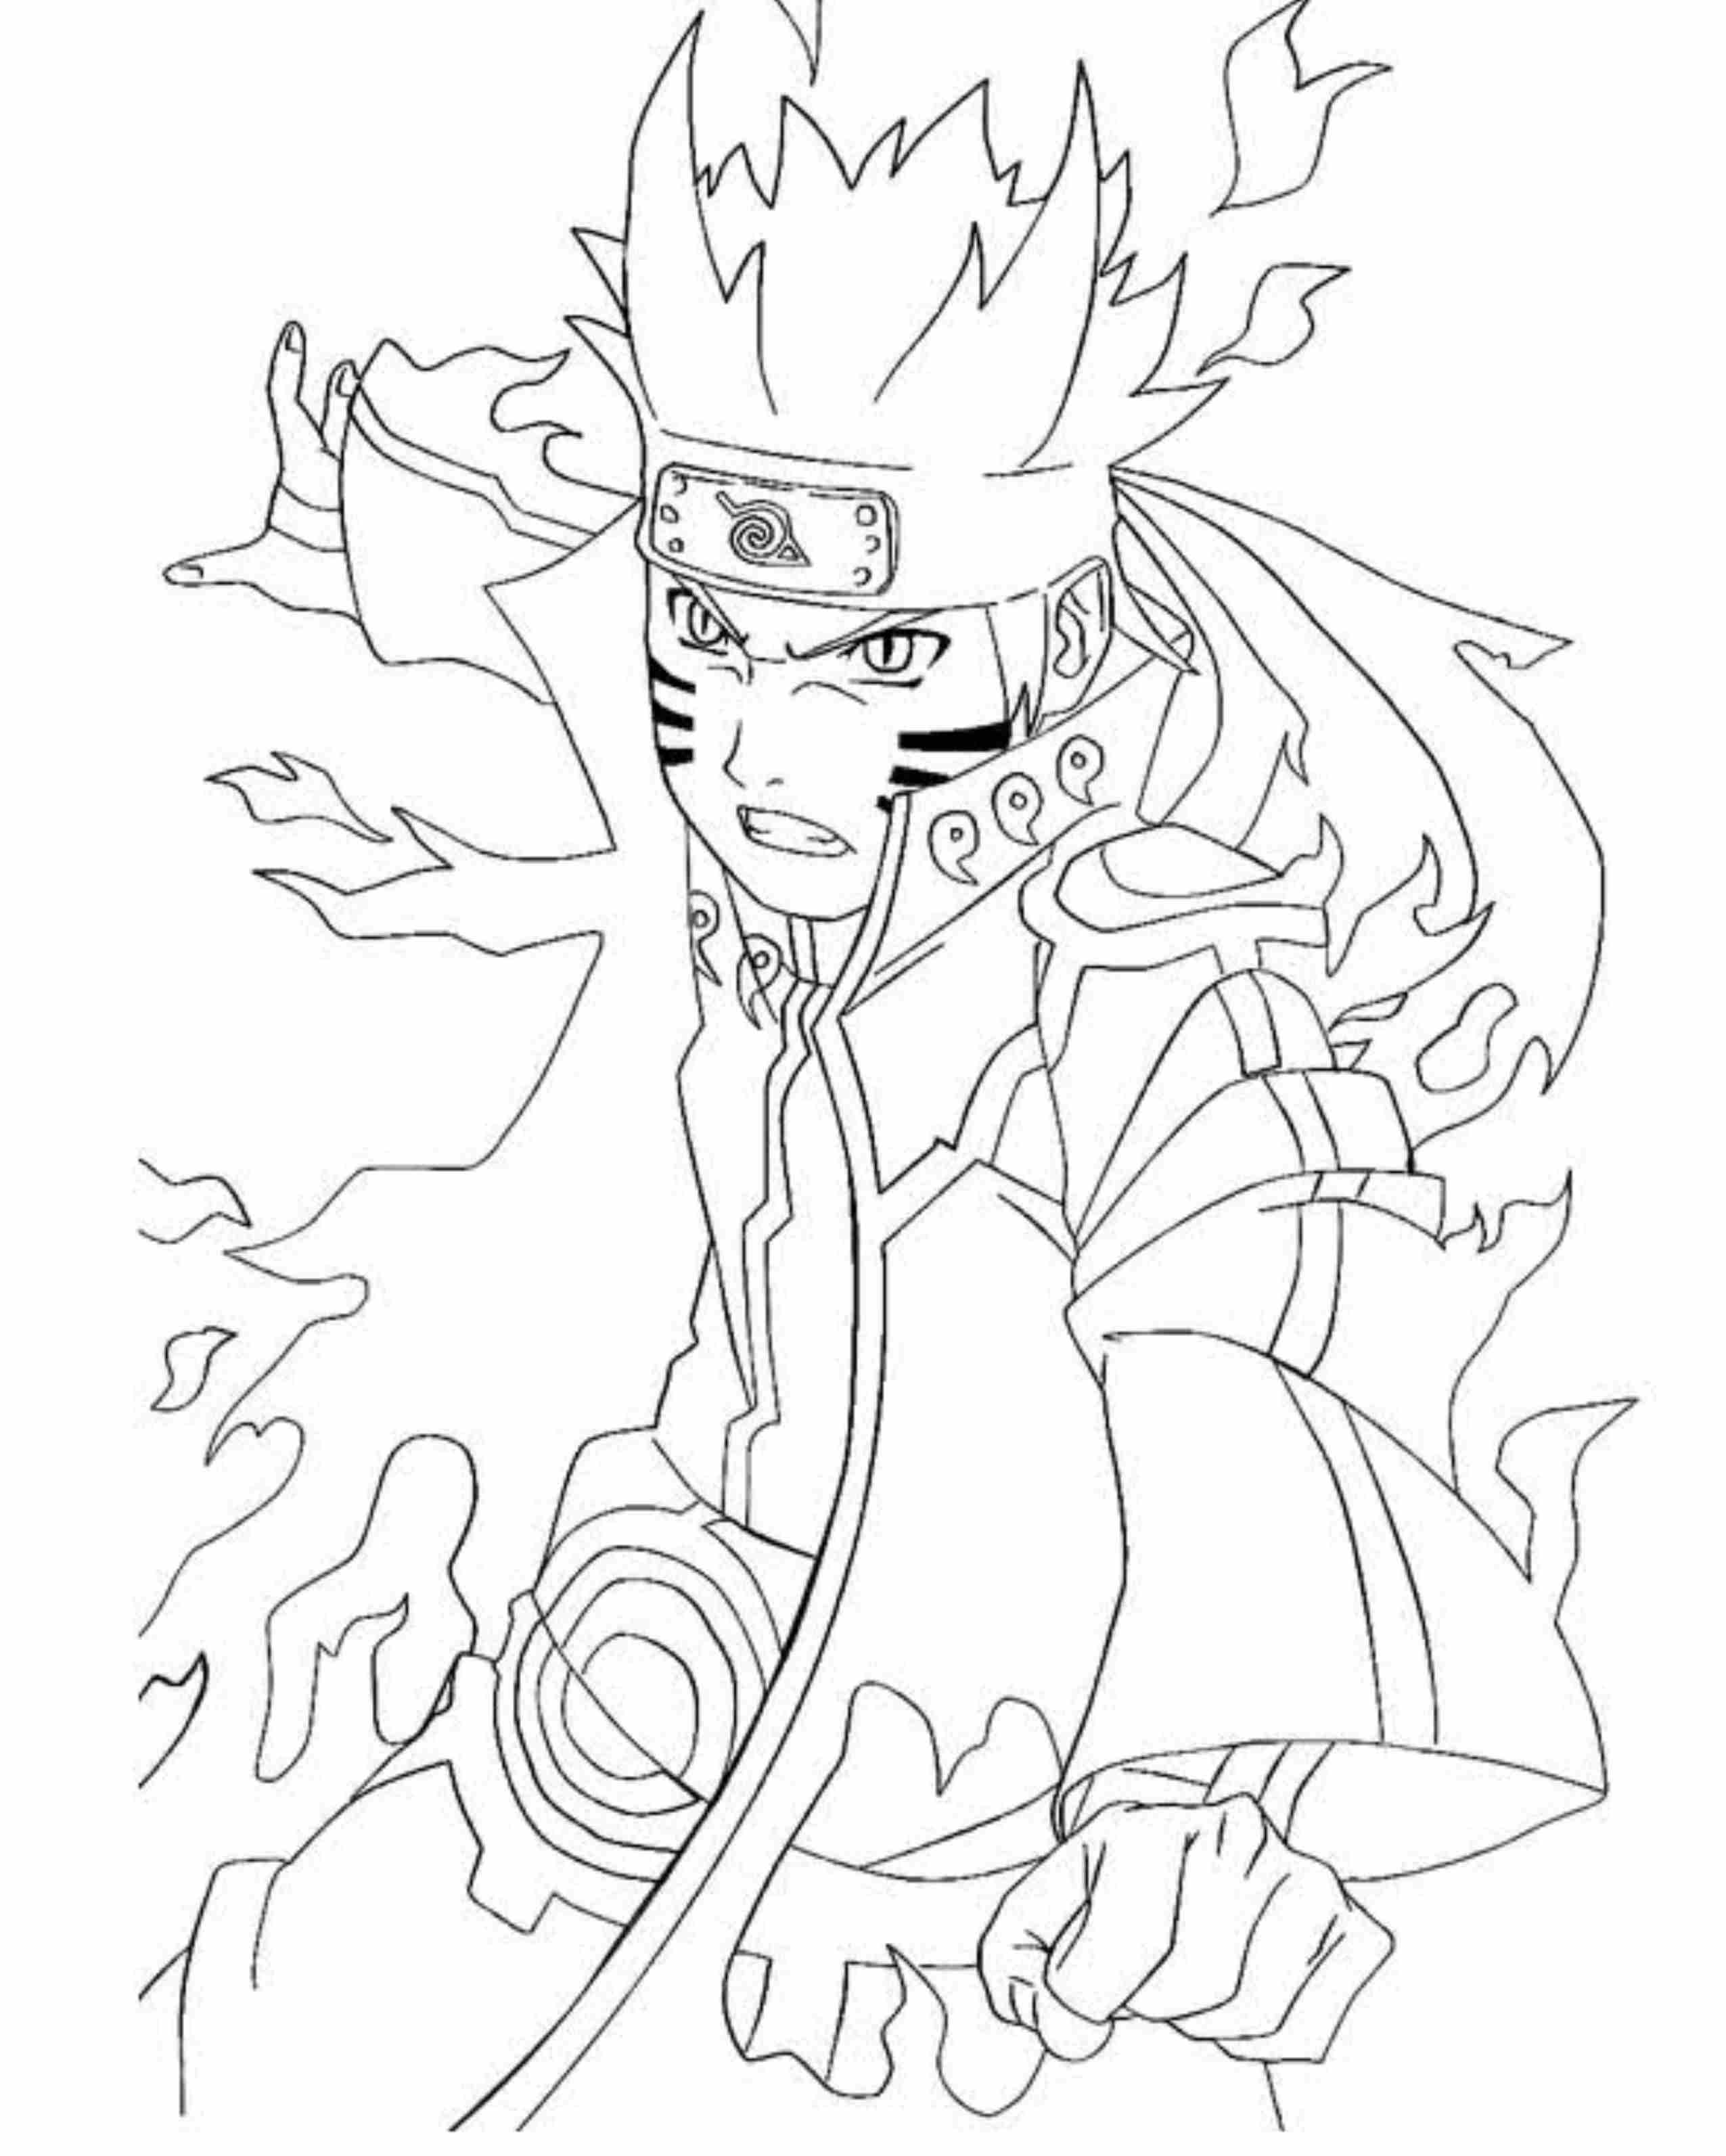 naruto coloring pages printable naruto coloring pages to get your kids occupied pages coloring naruto